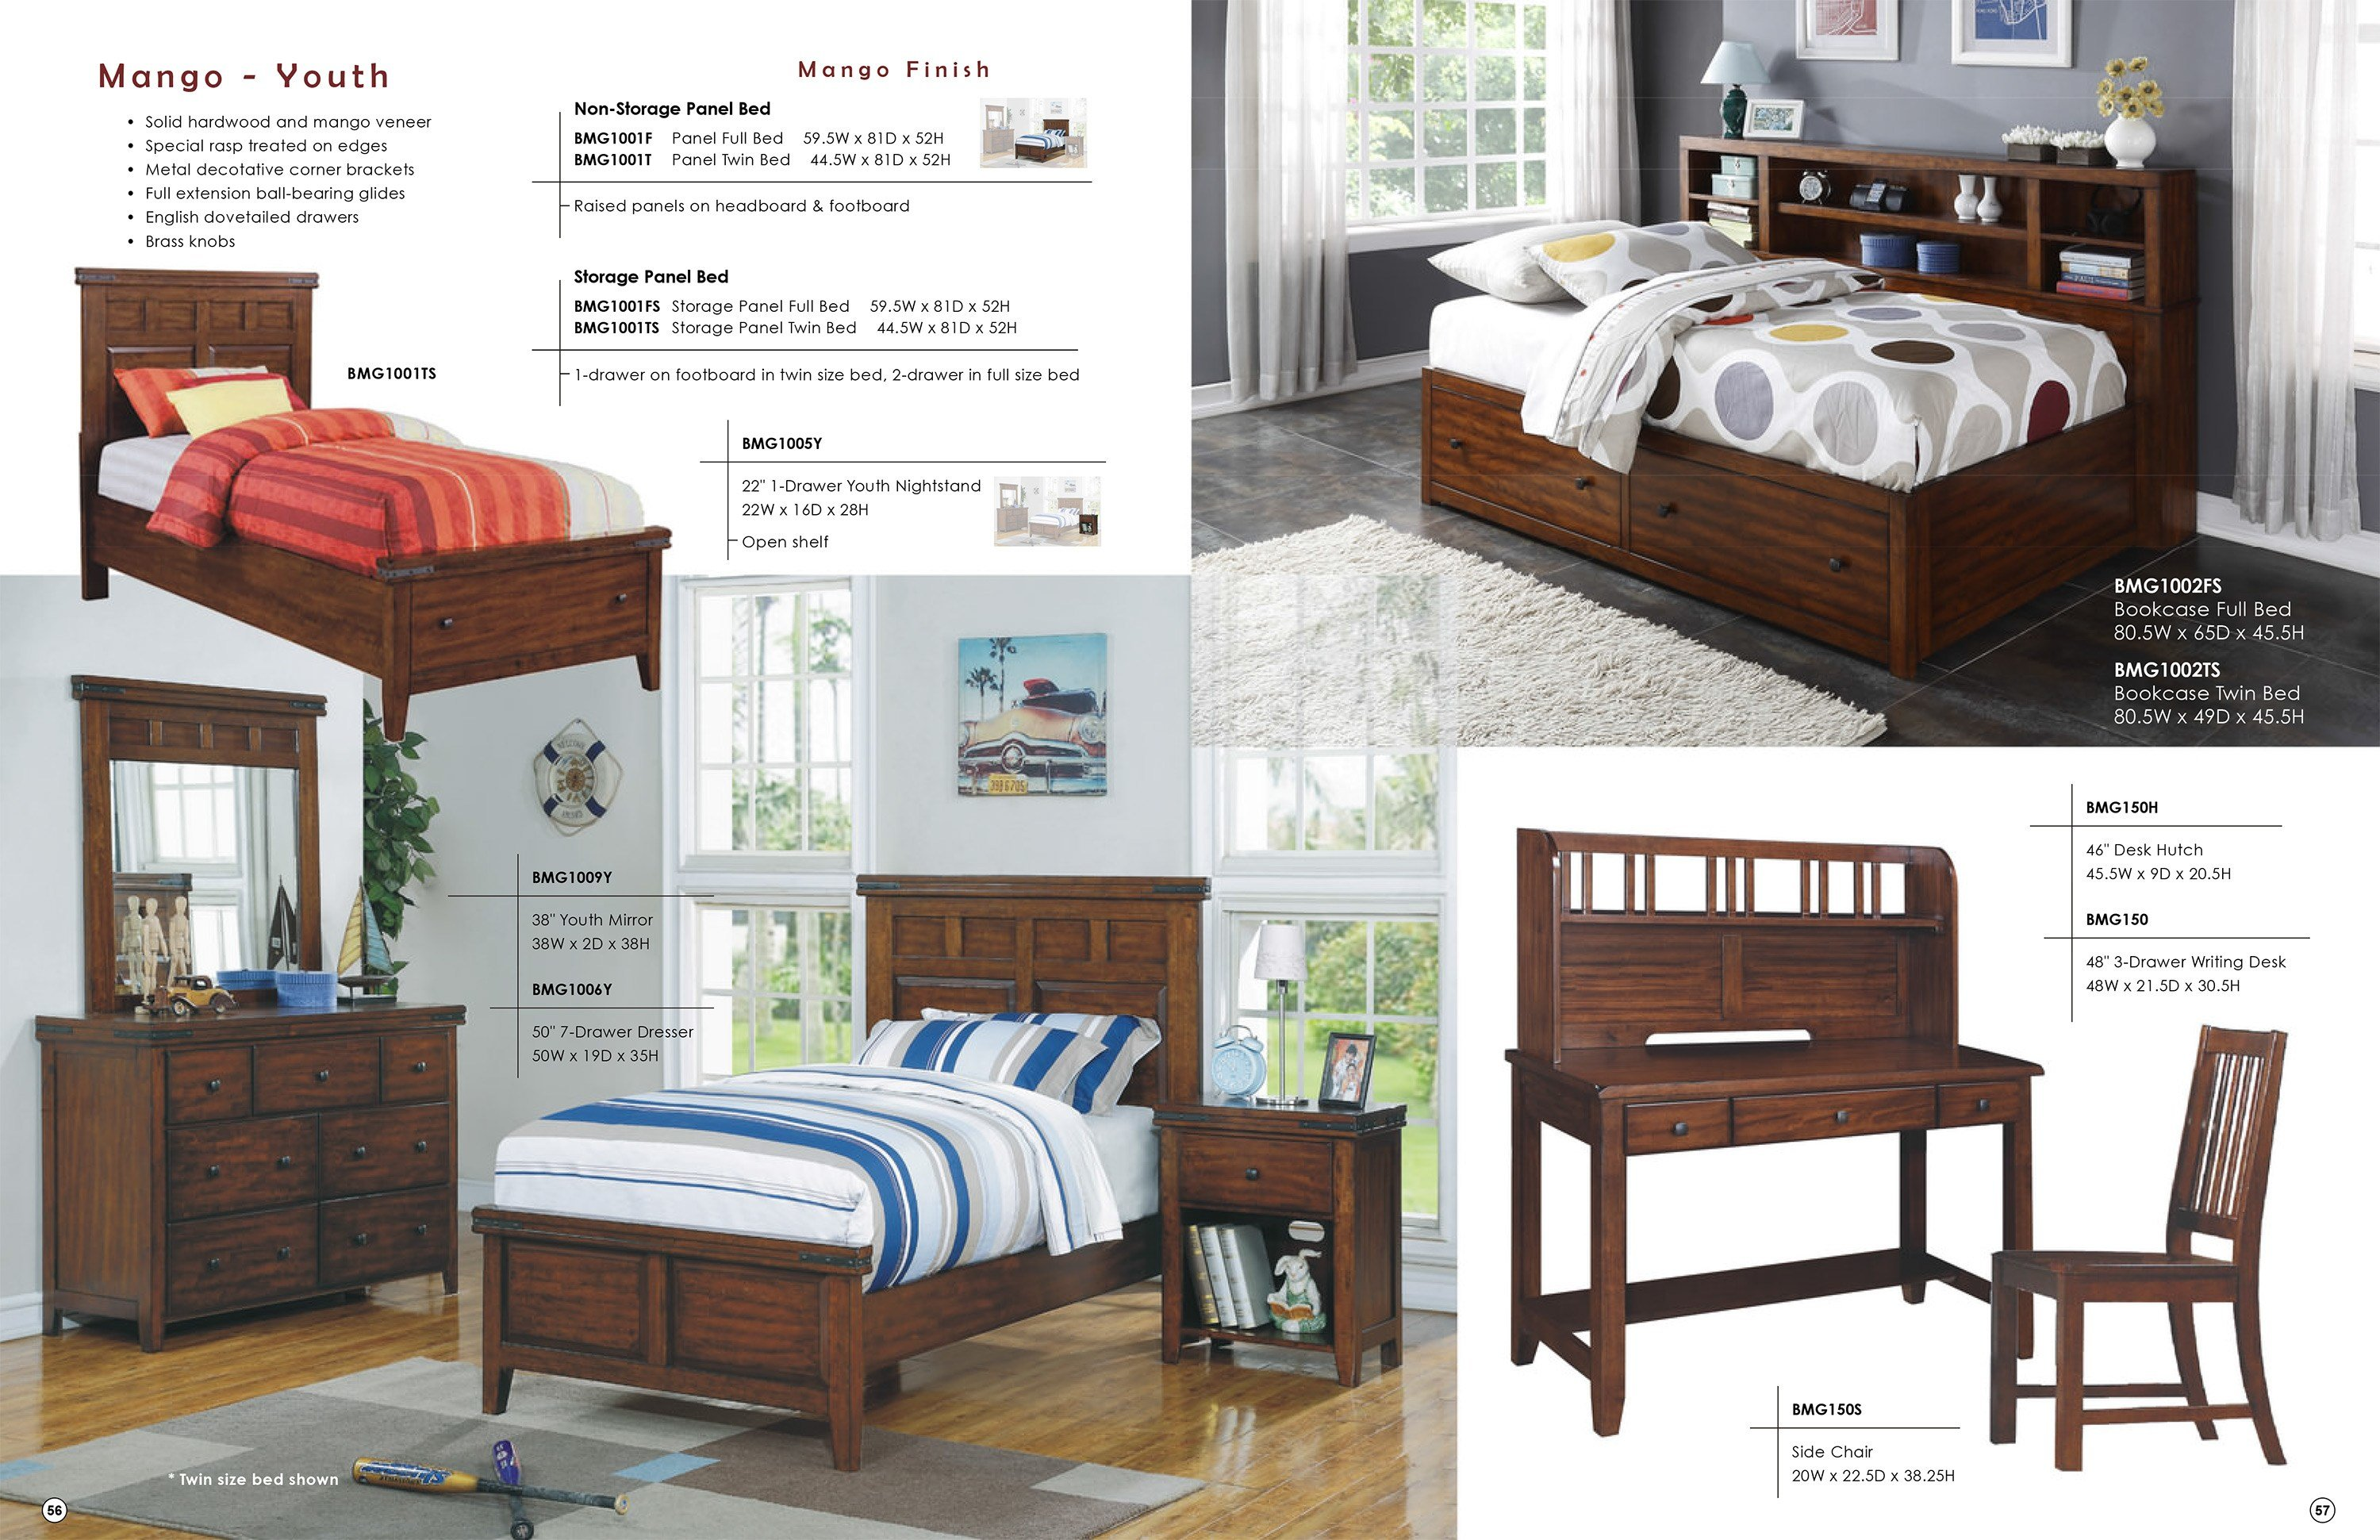 Best Low Prices • Winners Only Mango Bedroom Furniture • Al S With Pictures